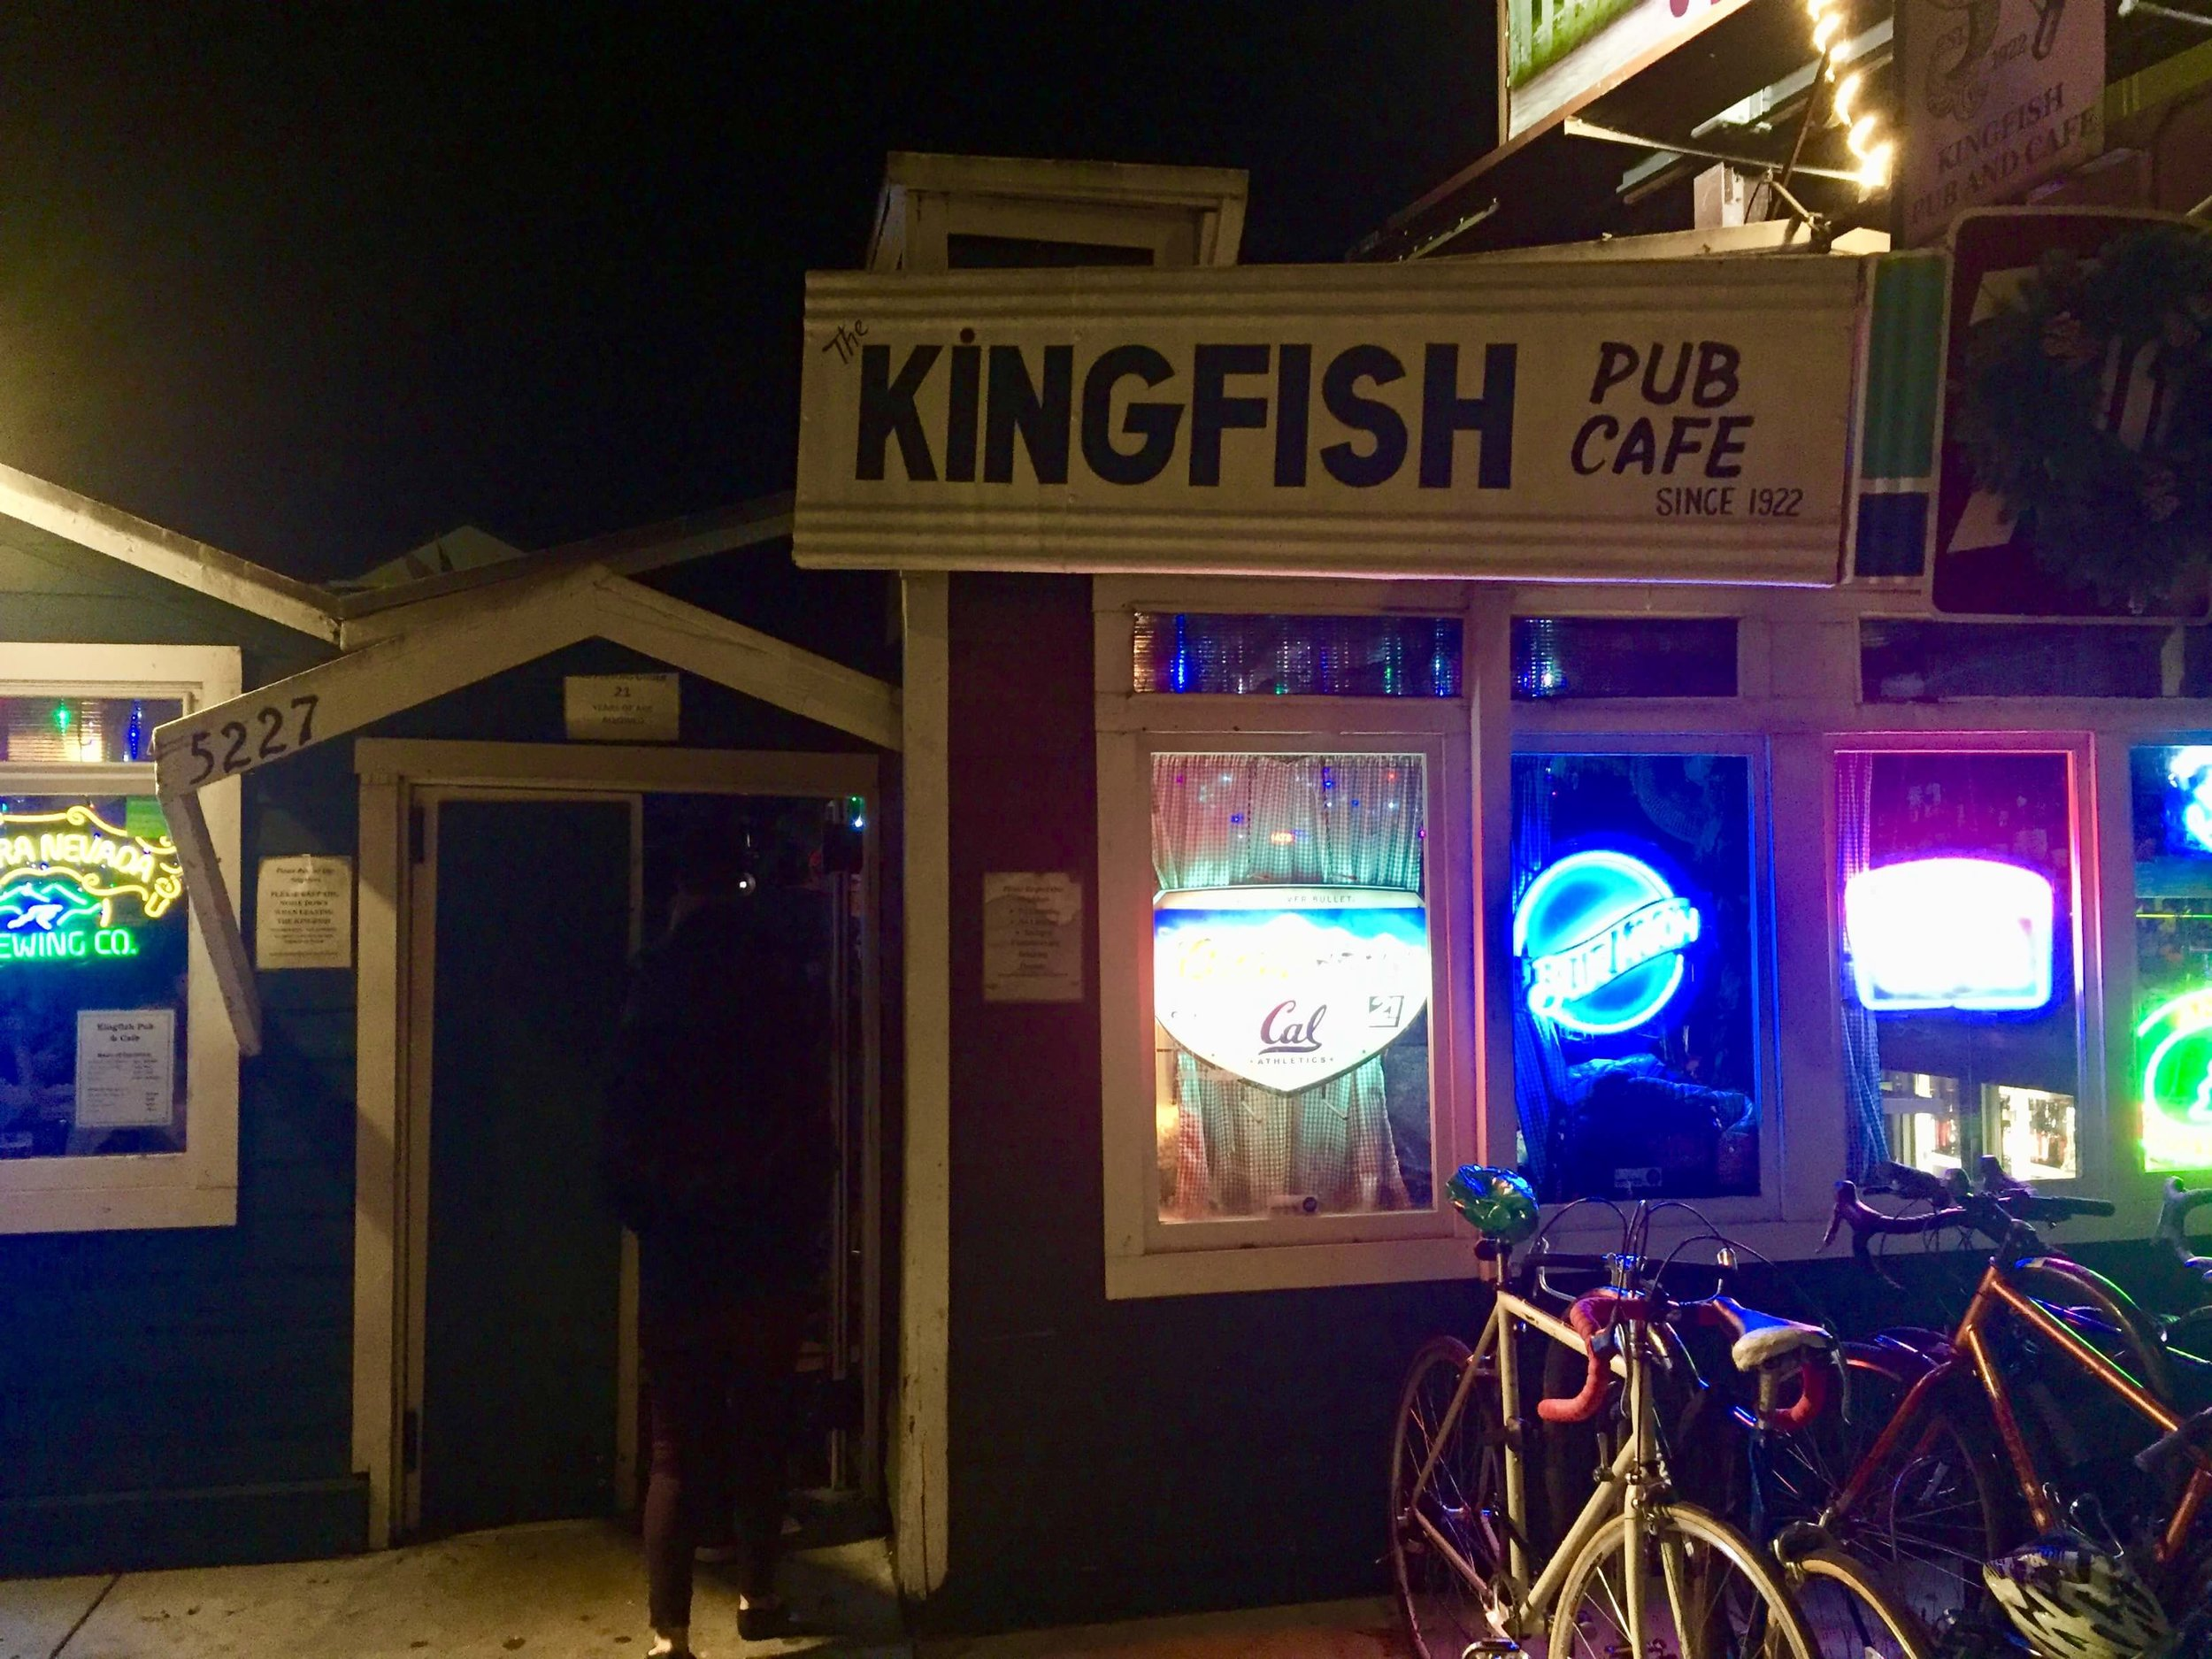 The Kingfish Pub and Cafe in Oakland's Temescal neighborhood.